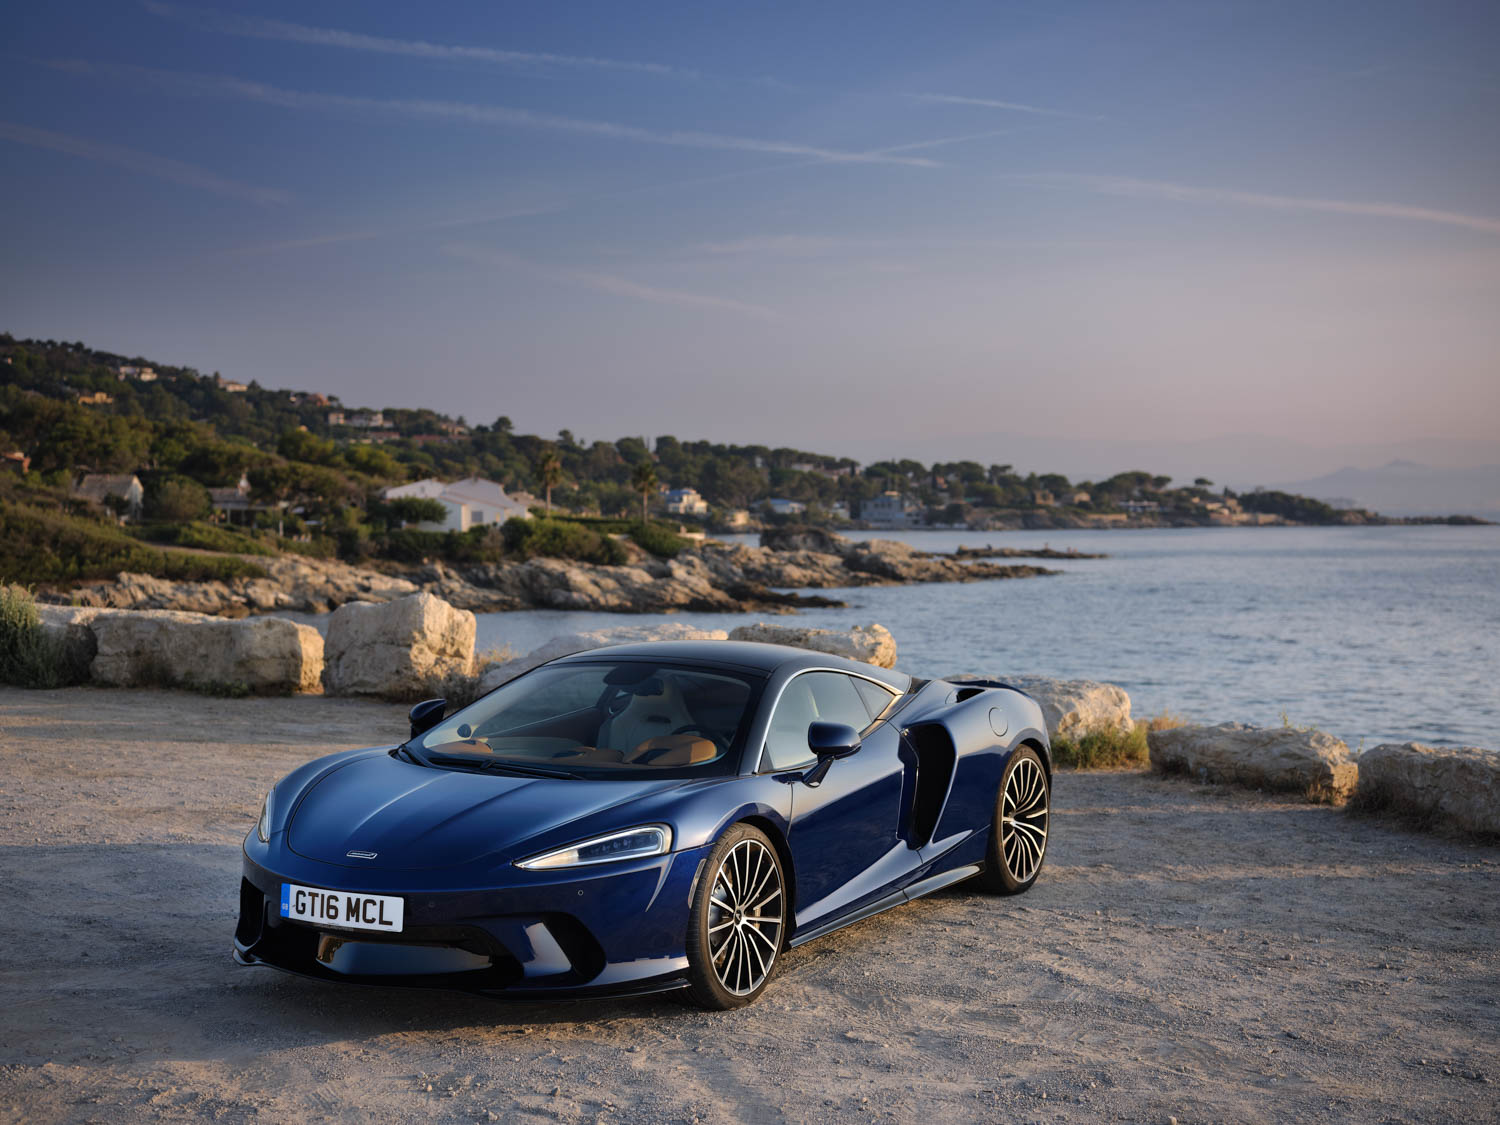 The GT is the cushiest McLaren yet, but is it really a cross-country champ?